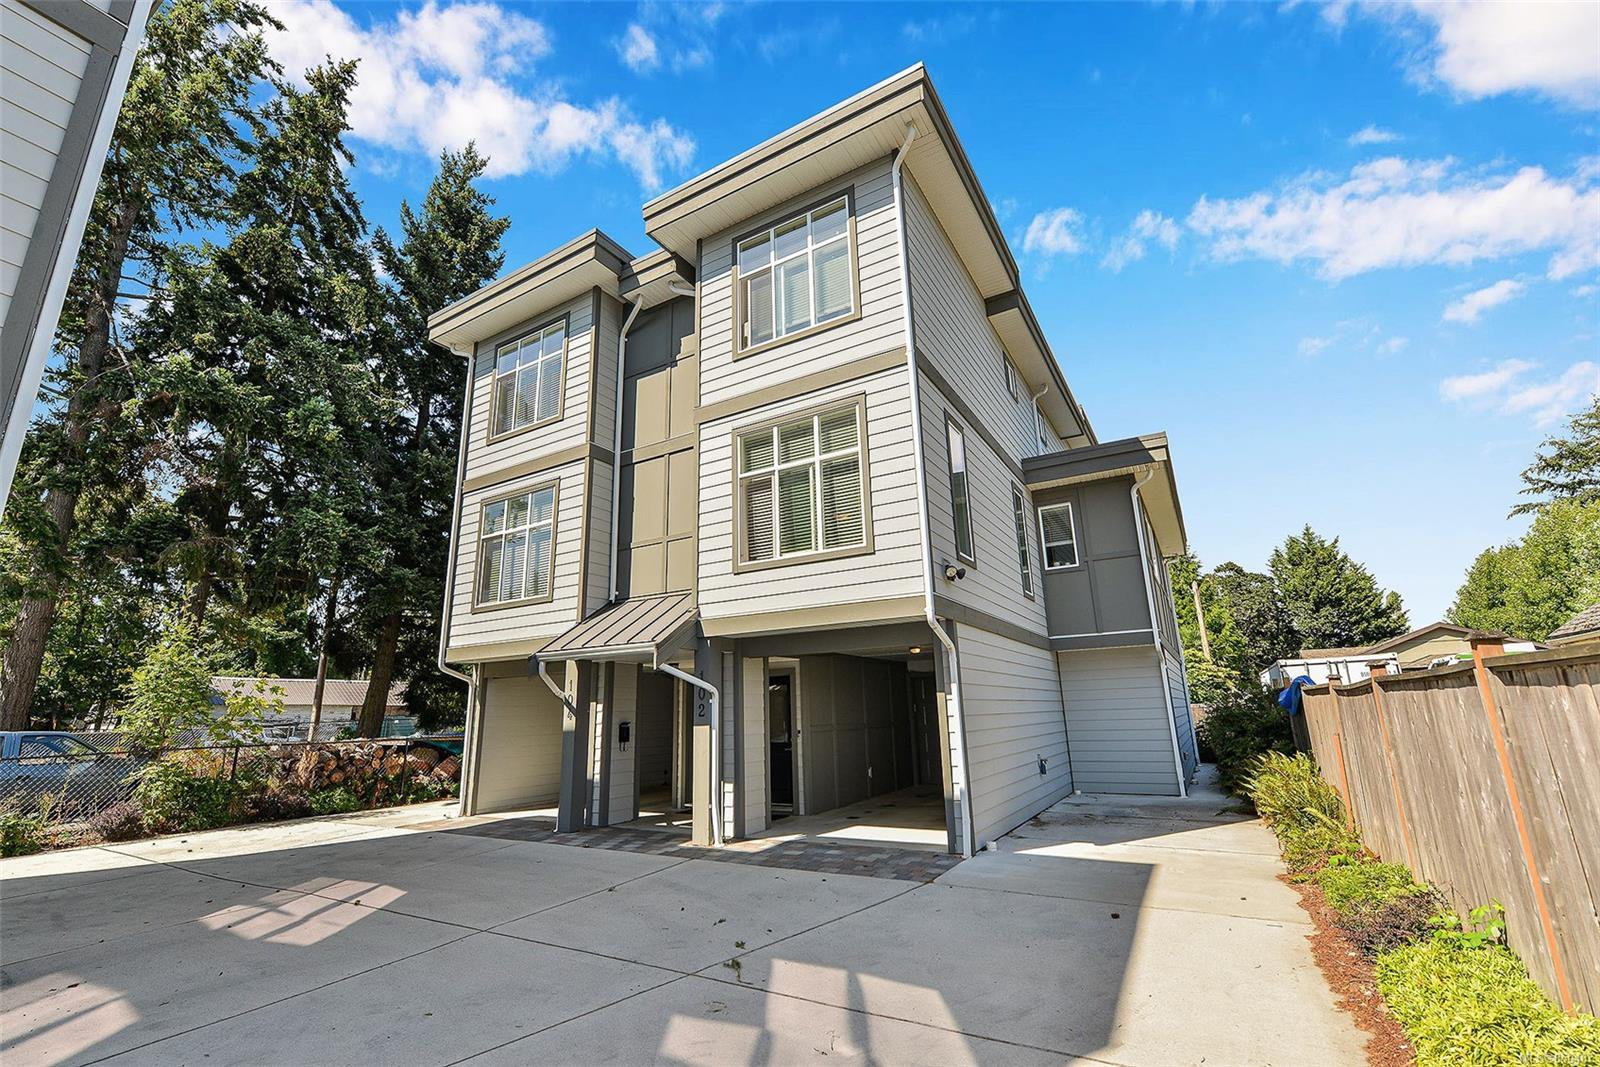 Main Photo: 102 944 DUNFORD Ave in : La Langford Proper Row/Townhouse for sale (Langford)  : MLS®# 850487